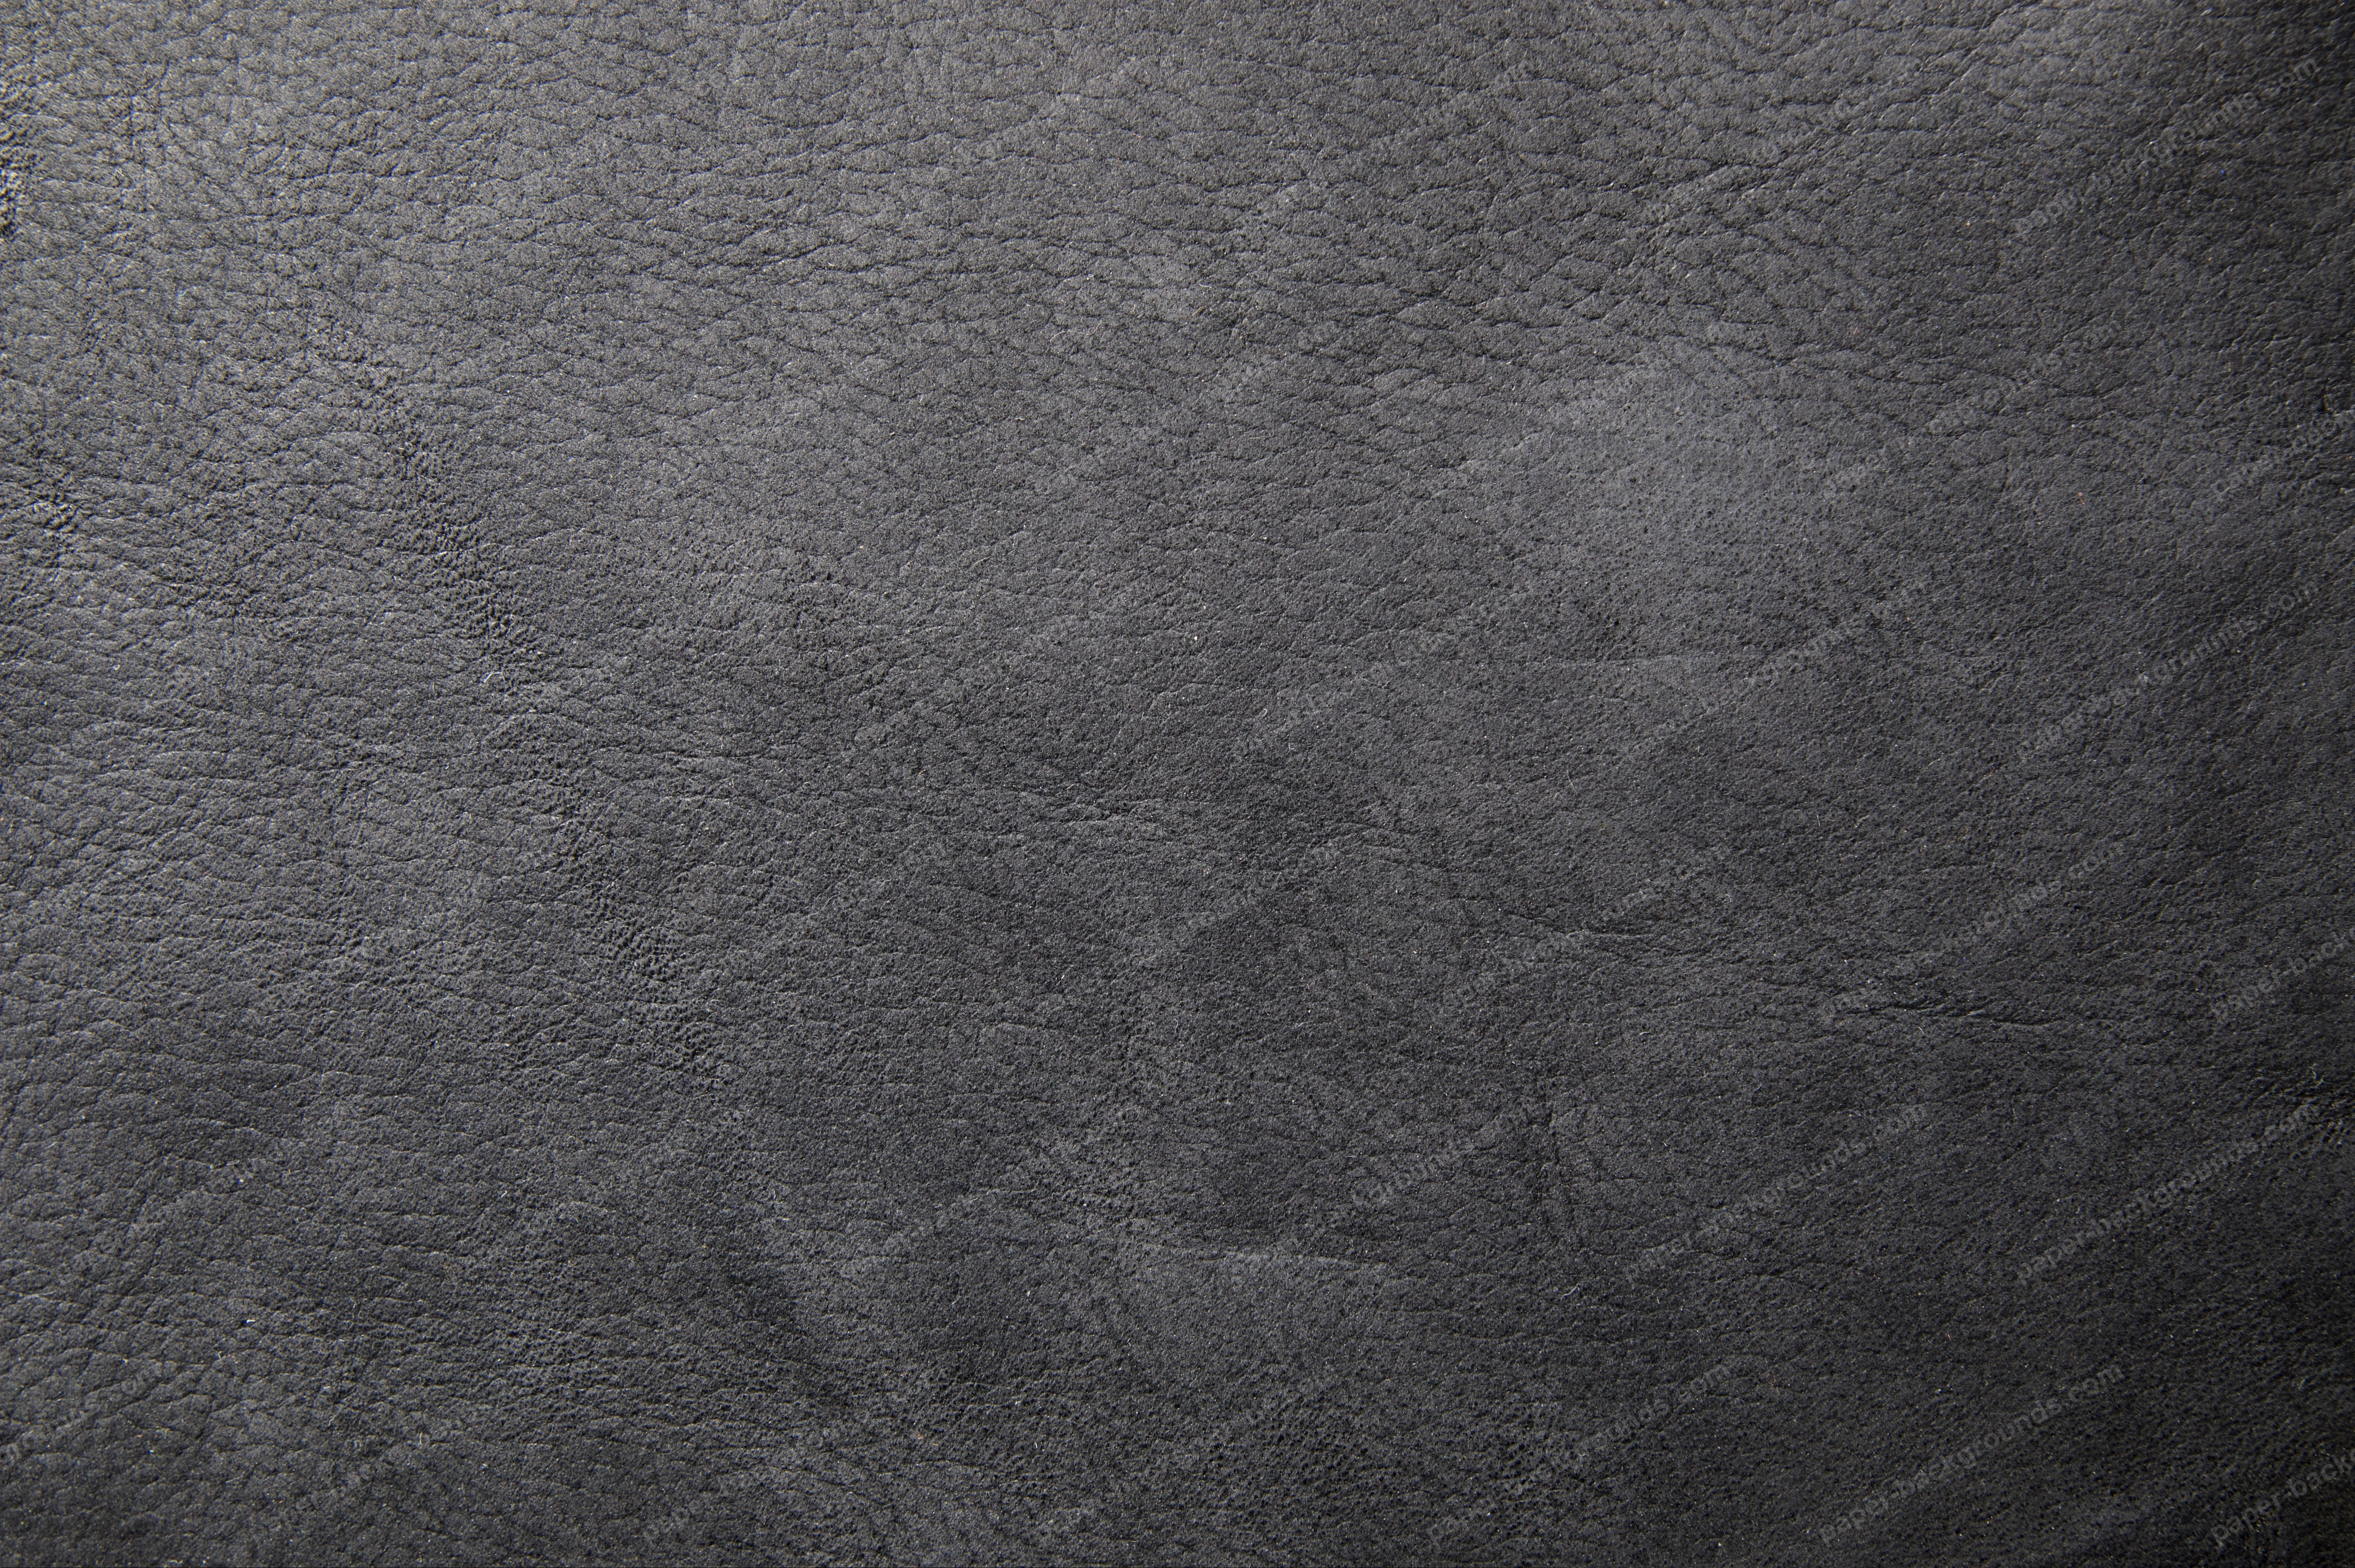 Black Leather Texture Background Paper Backgrounds 5463x3638